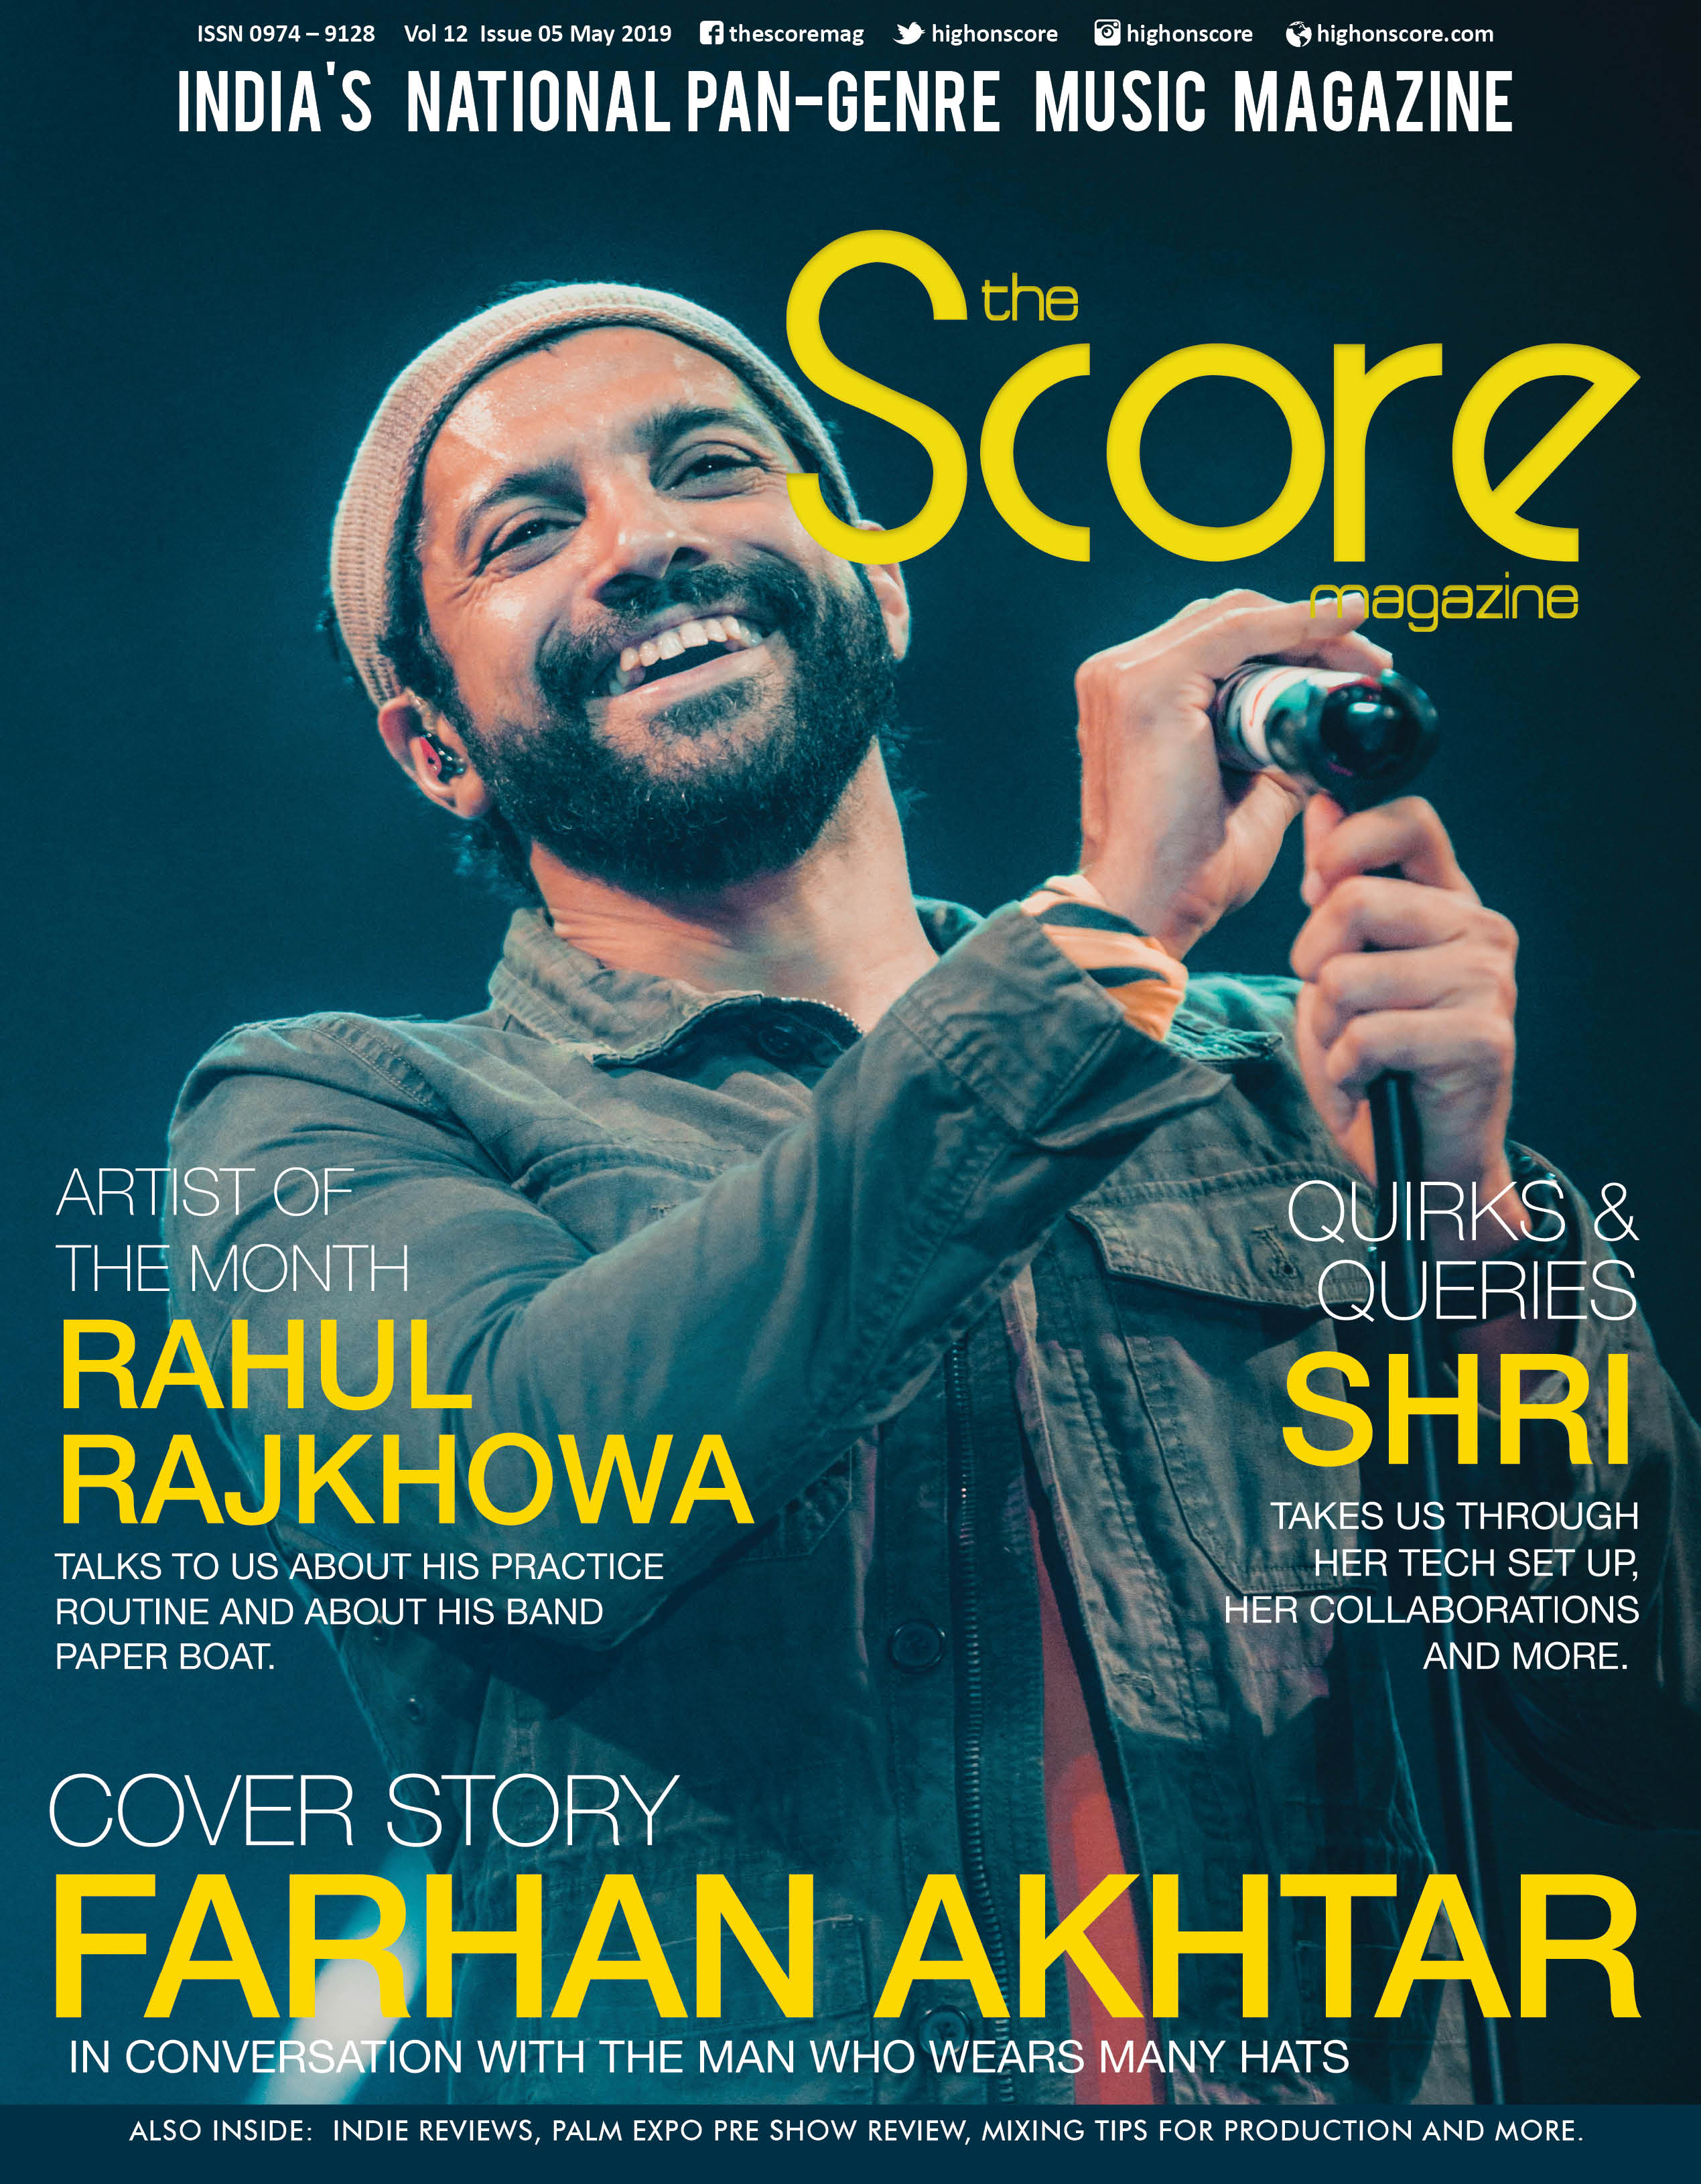 May 2019 issue featuring Farhan Akhtar on the cover